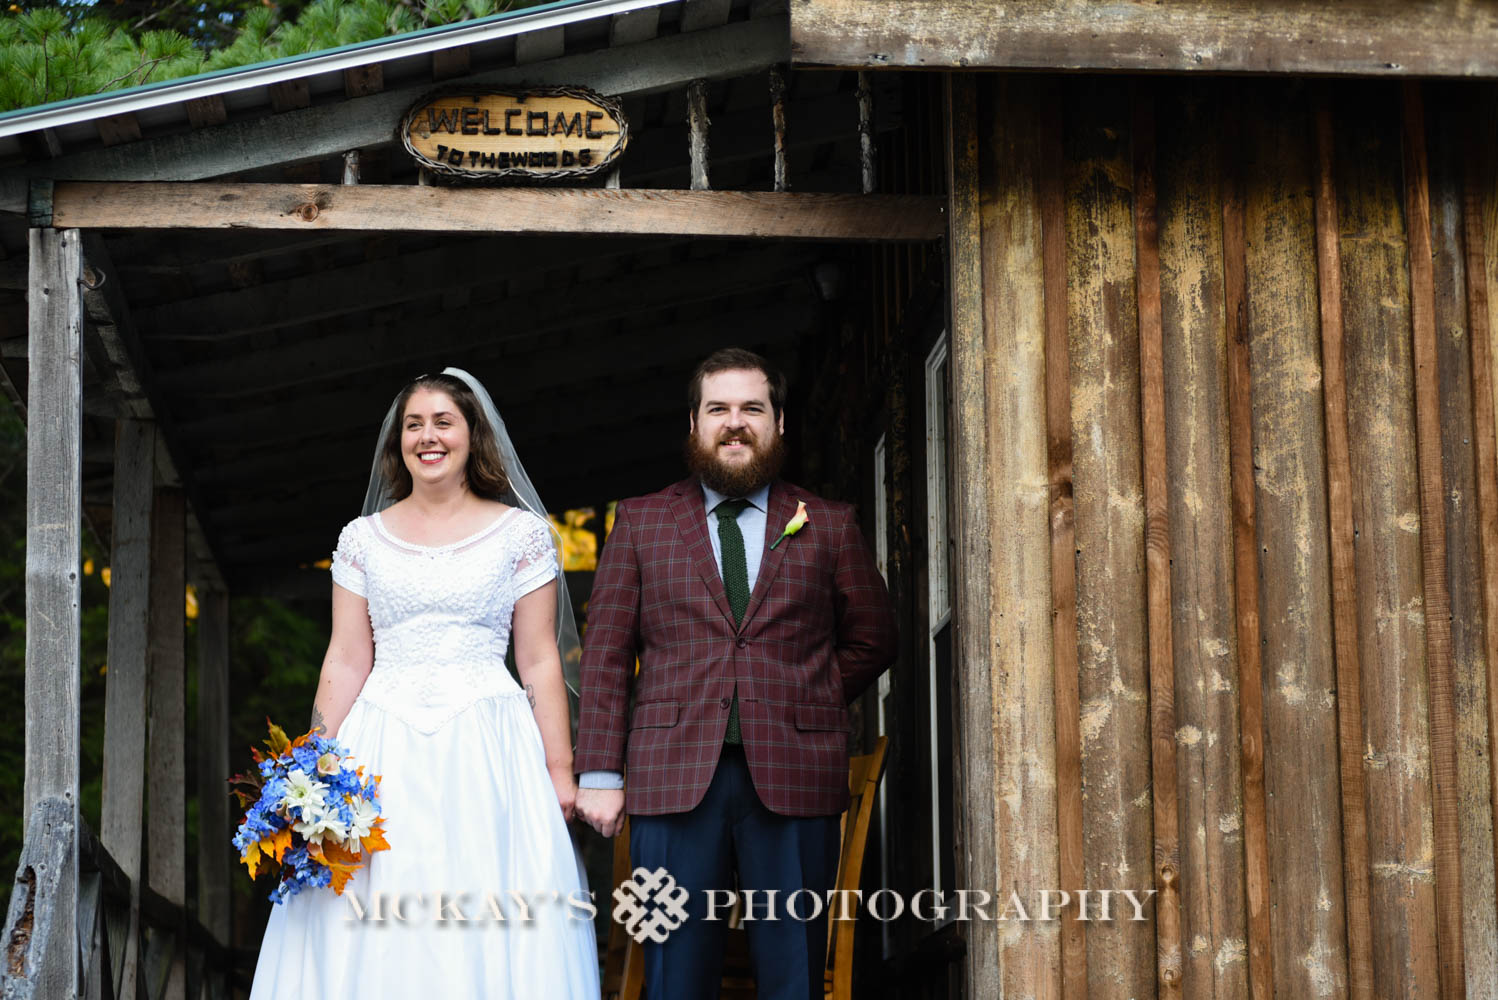 Fall wedding venues in the Adirondacks for small weddings